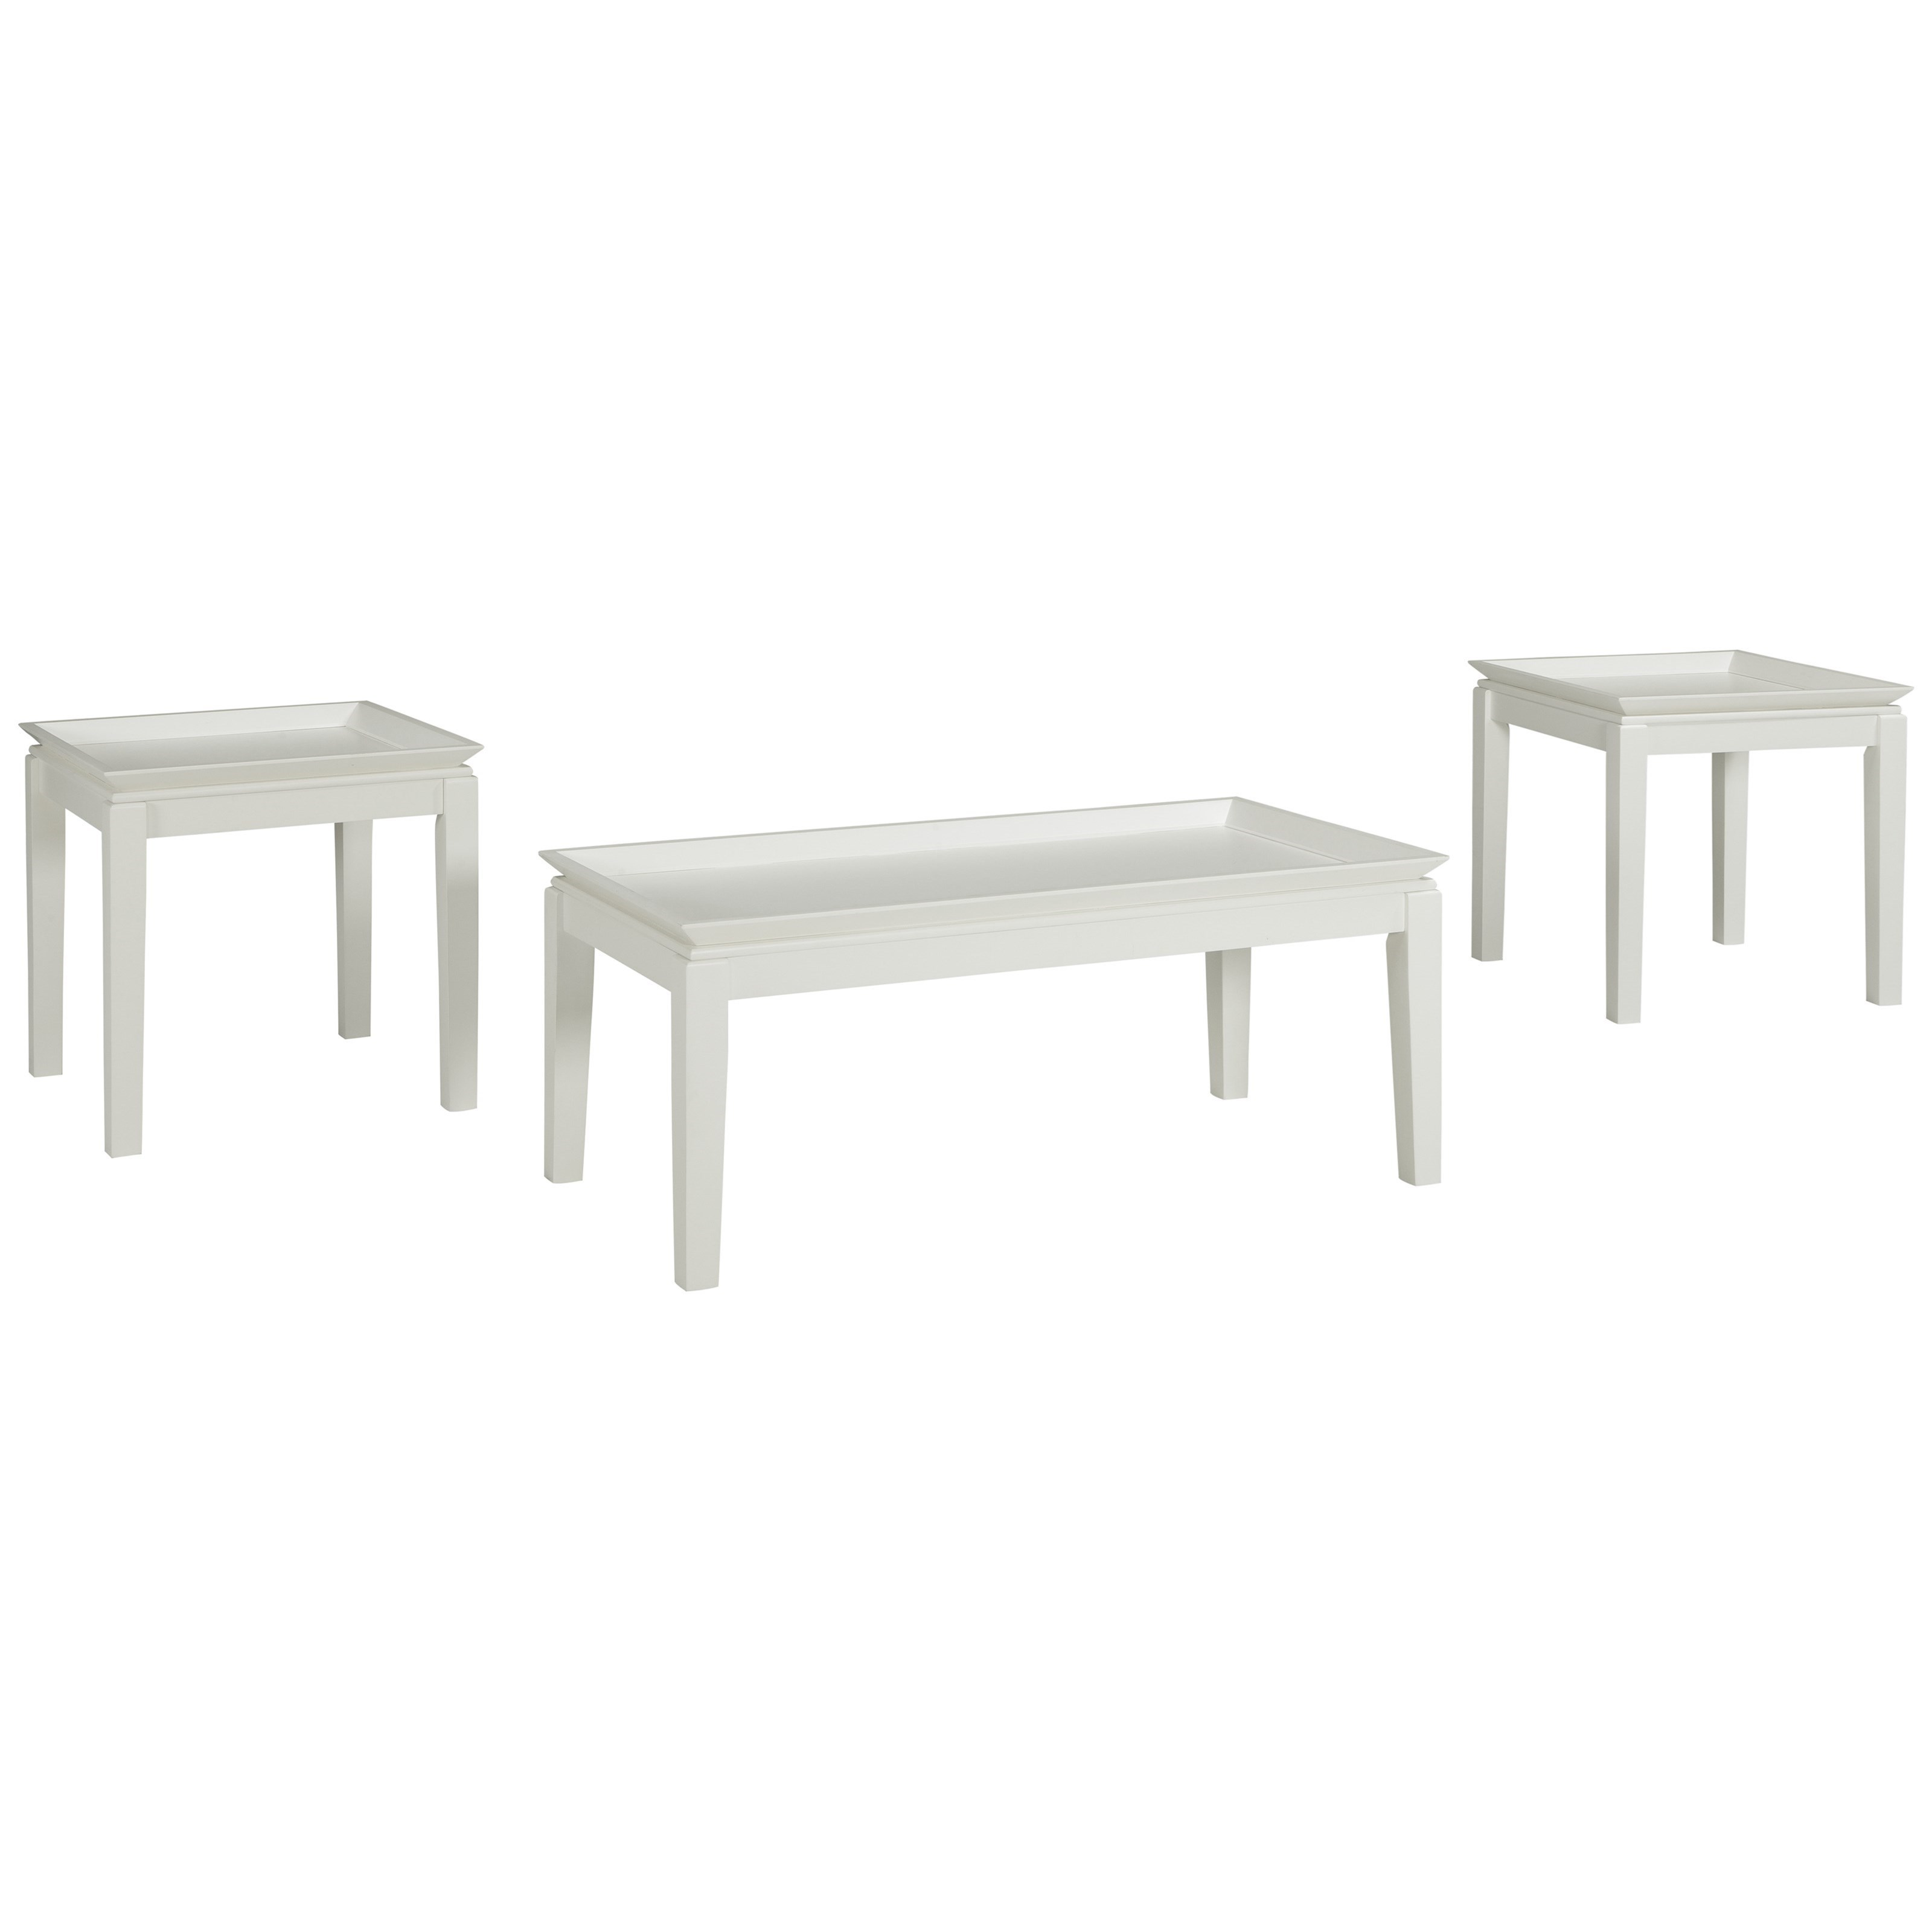 Signature Design by Ashley Ardintown 3 Piece Occasional Table Set - Item Number: T262-13